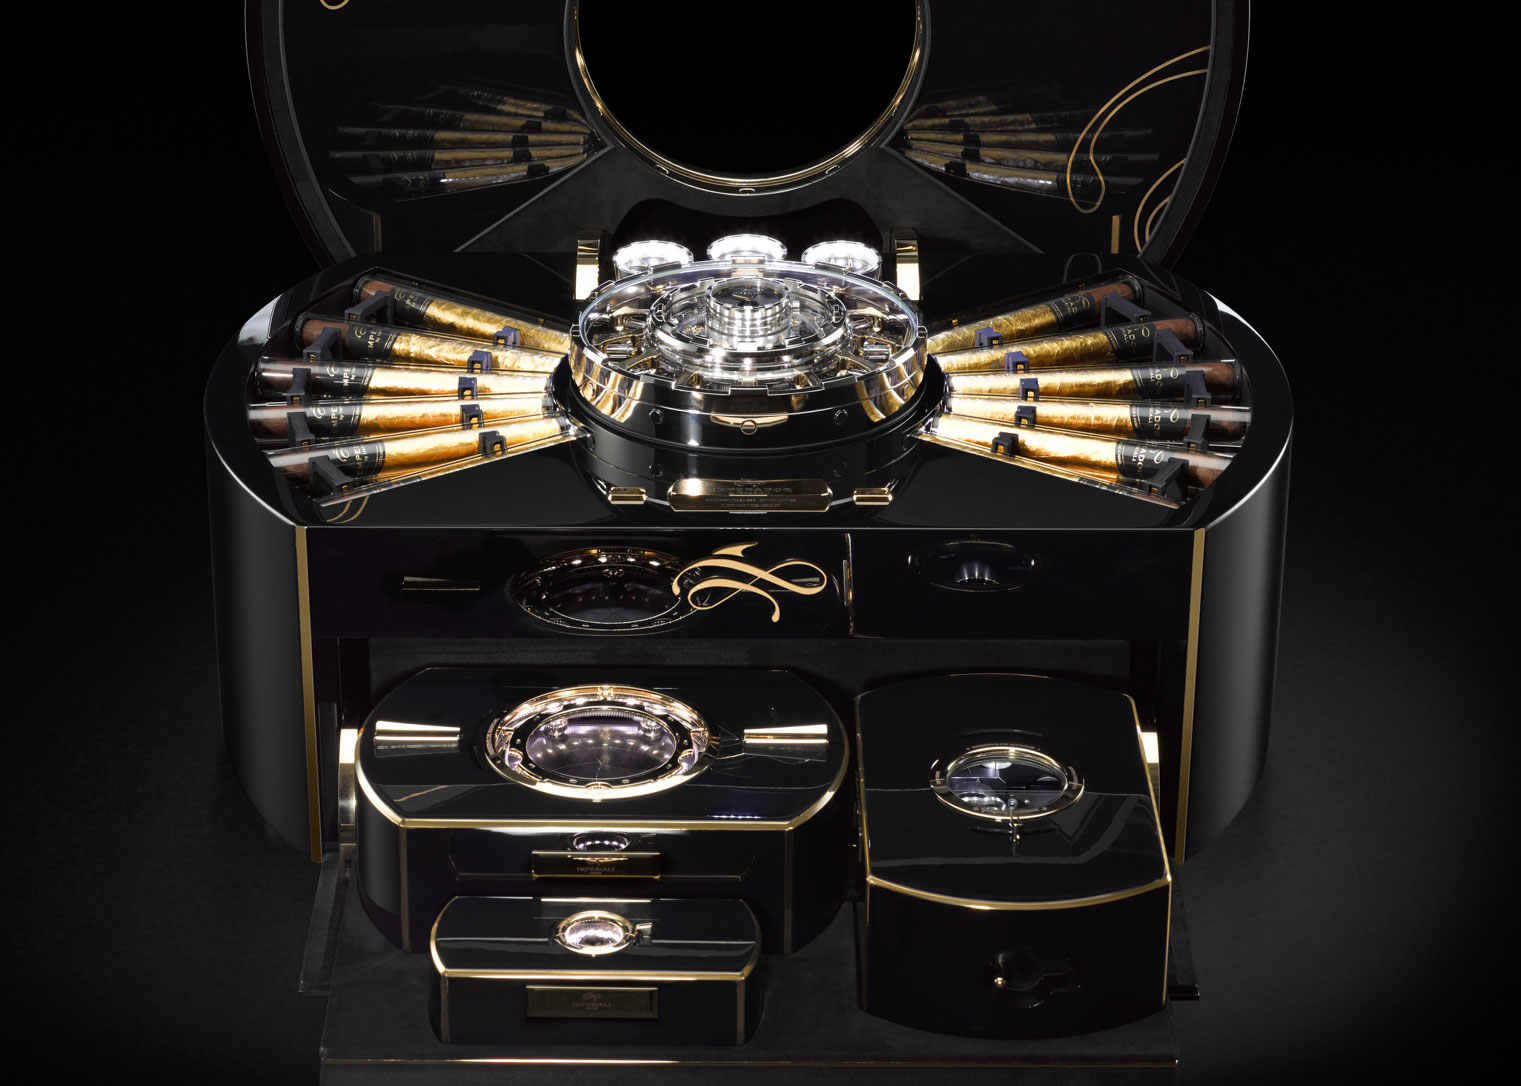 Like a luxurious safe, the heart of the chest conceals two secure, climate-controlled compartments reserved for the 24 cigars each wrapped in four leaves of fine gold